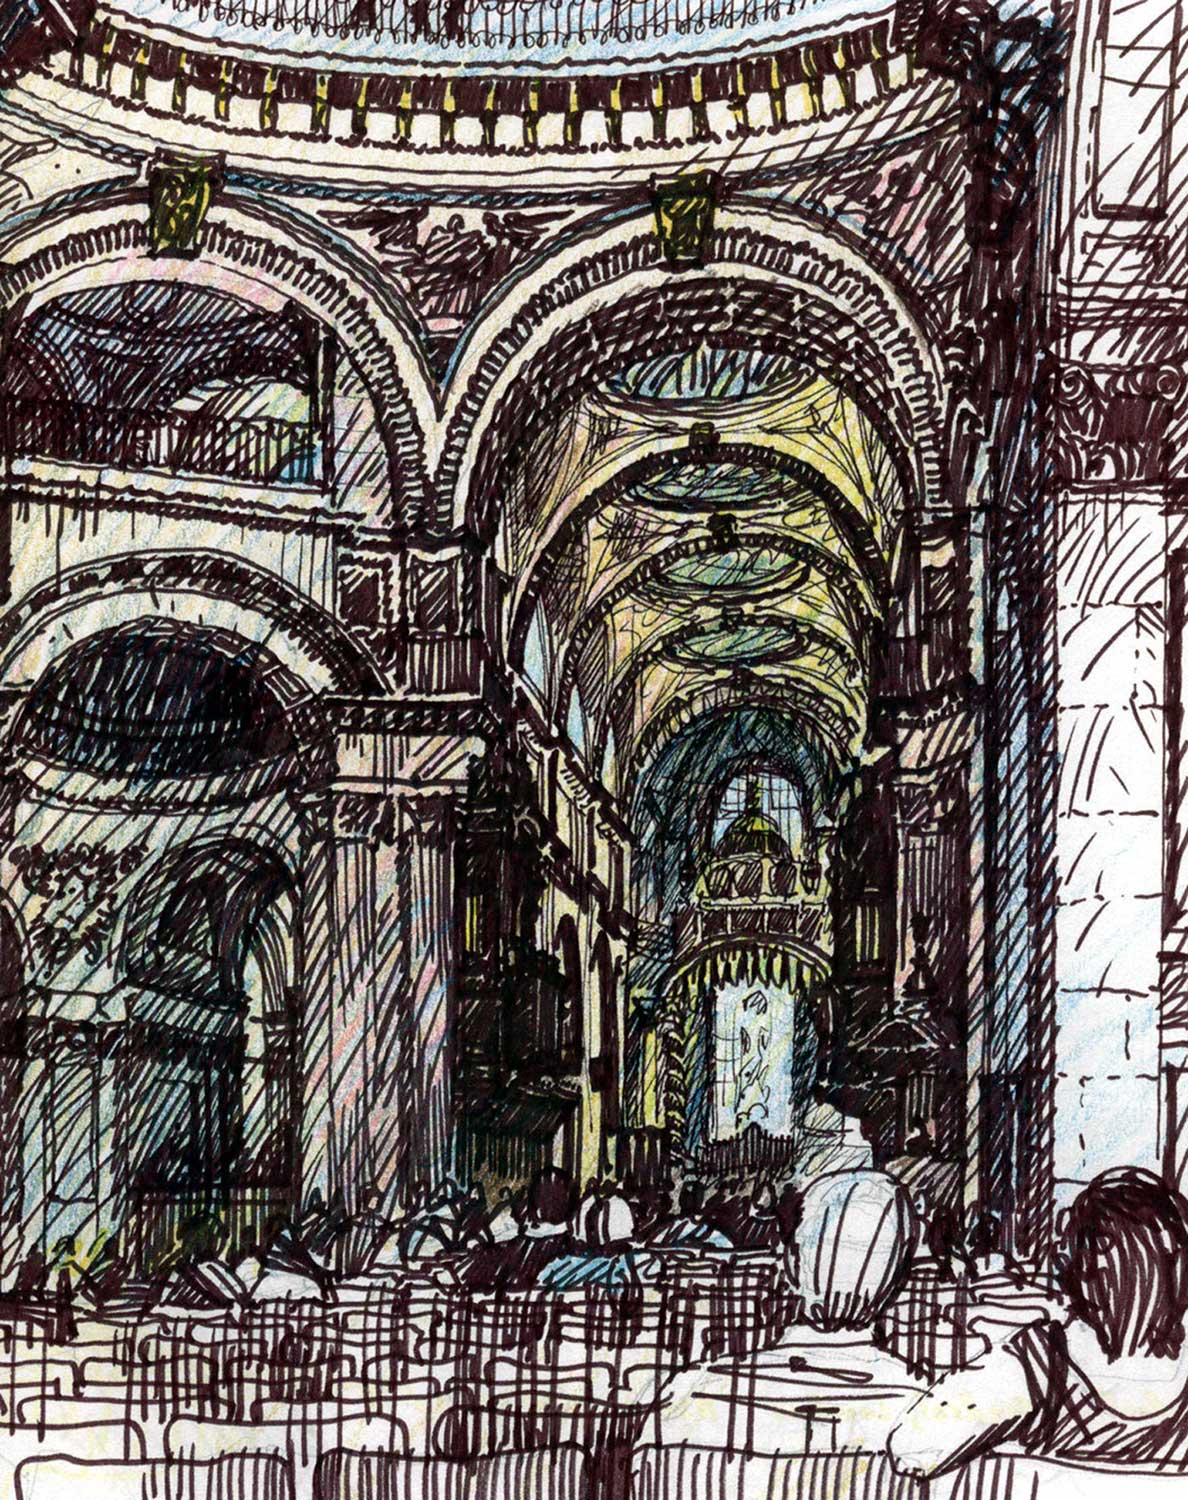 St. Paul's Cathedral, London.  Felt-tip pen and colored pencil.